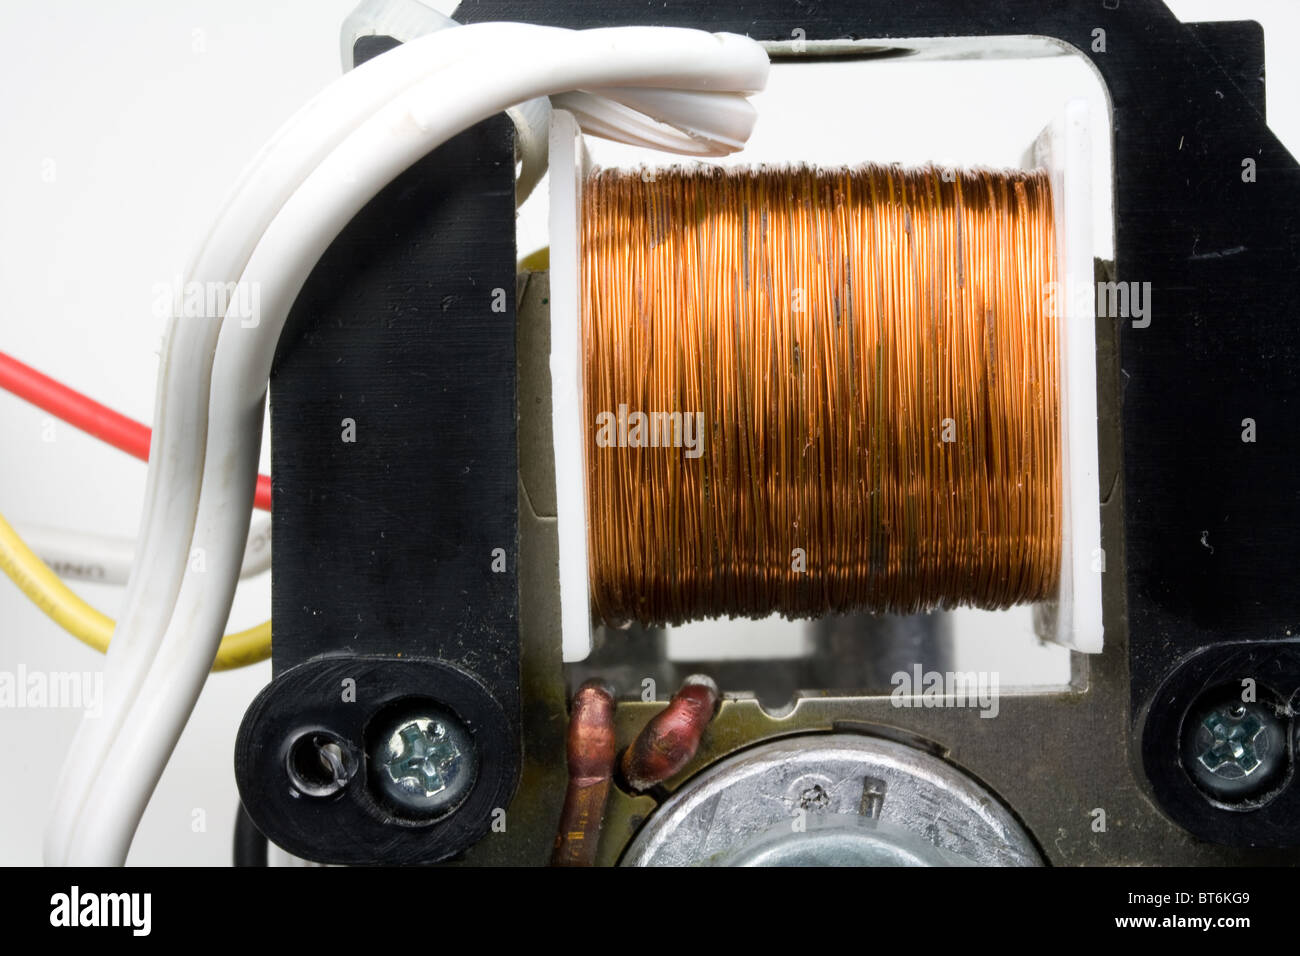 Coil Of Copper Wire In Electric Motor Stock Photo 32109177 Alamy Electrical